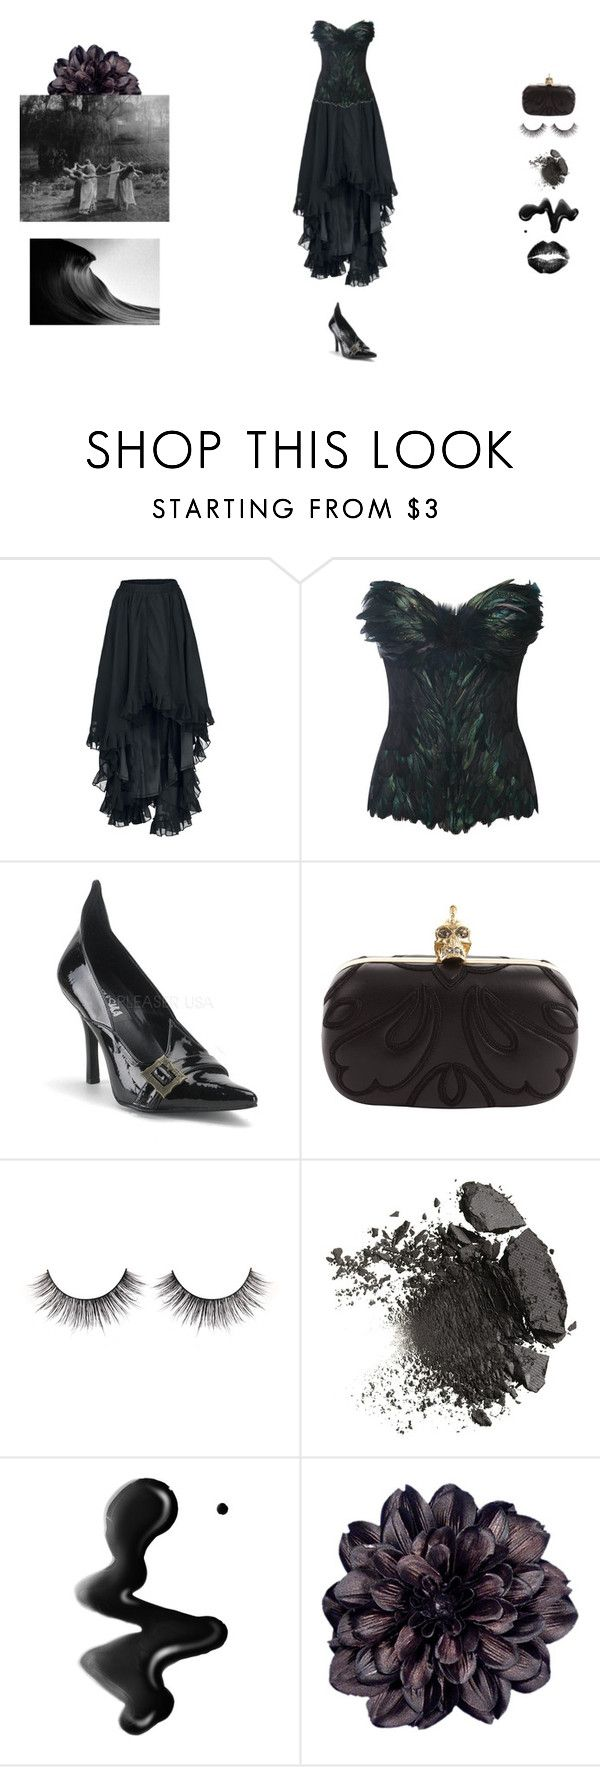 """""""black water"""" by honeydust ❤ liked on Polyvore featuring LEE KLABIN, Alexander McQueen and Dahlia"""